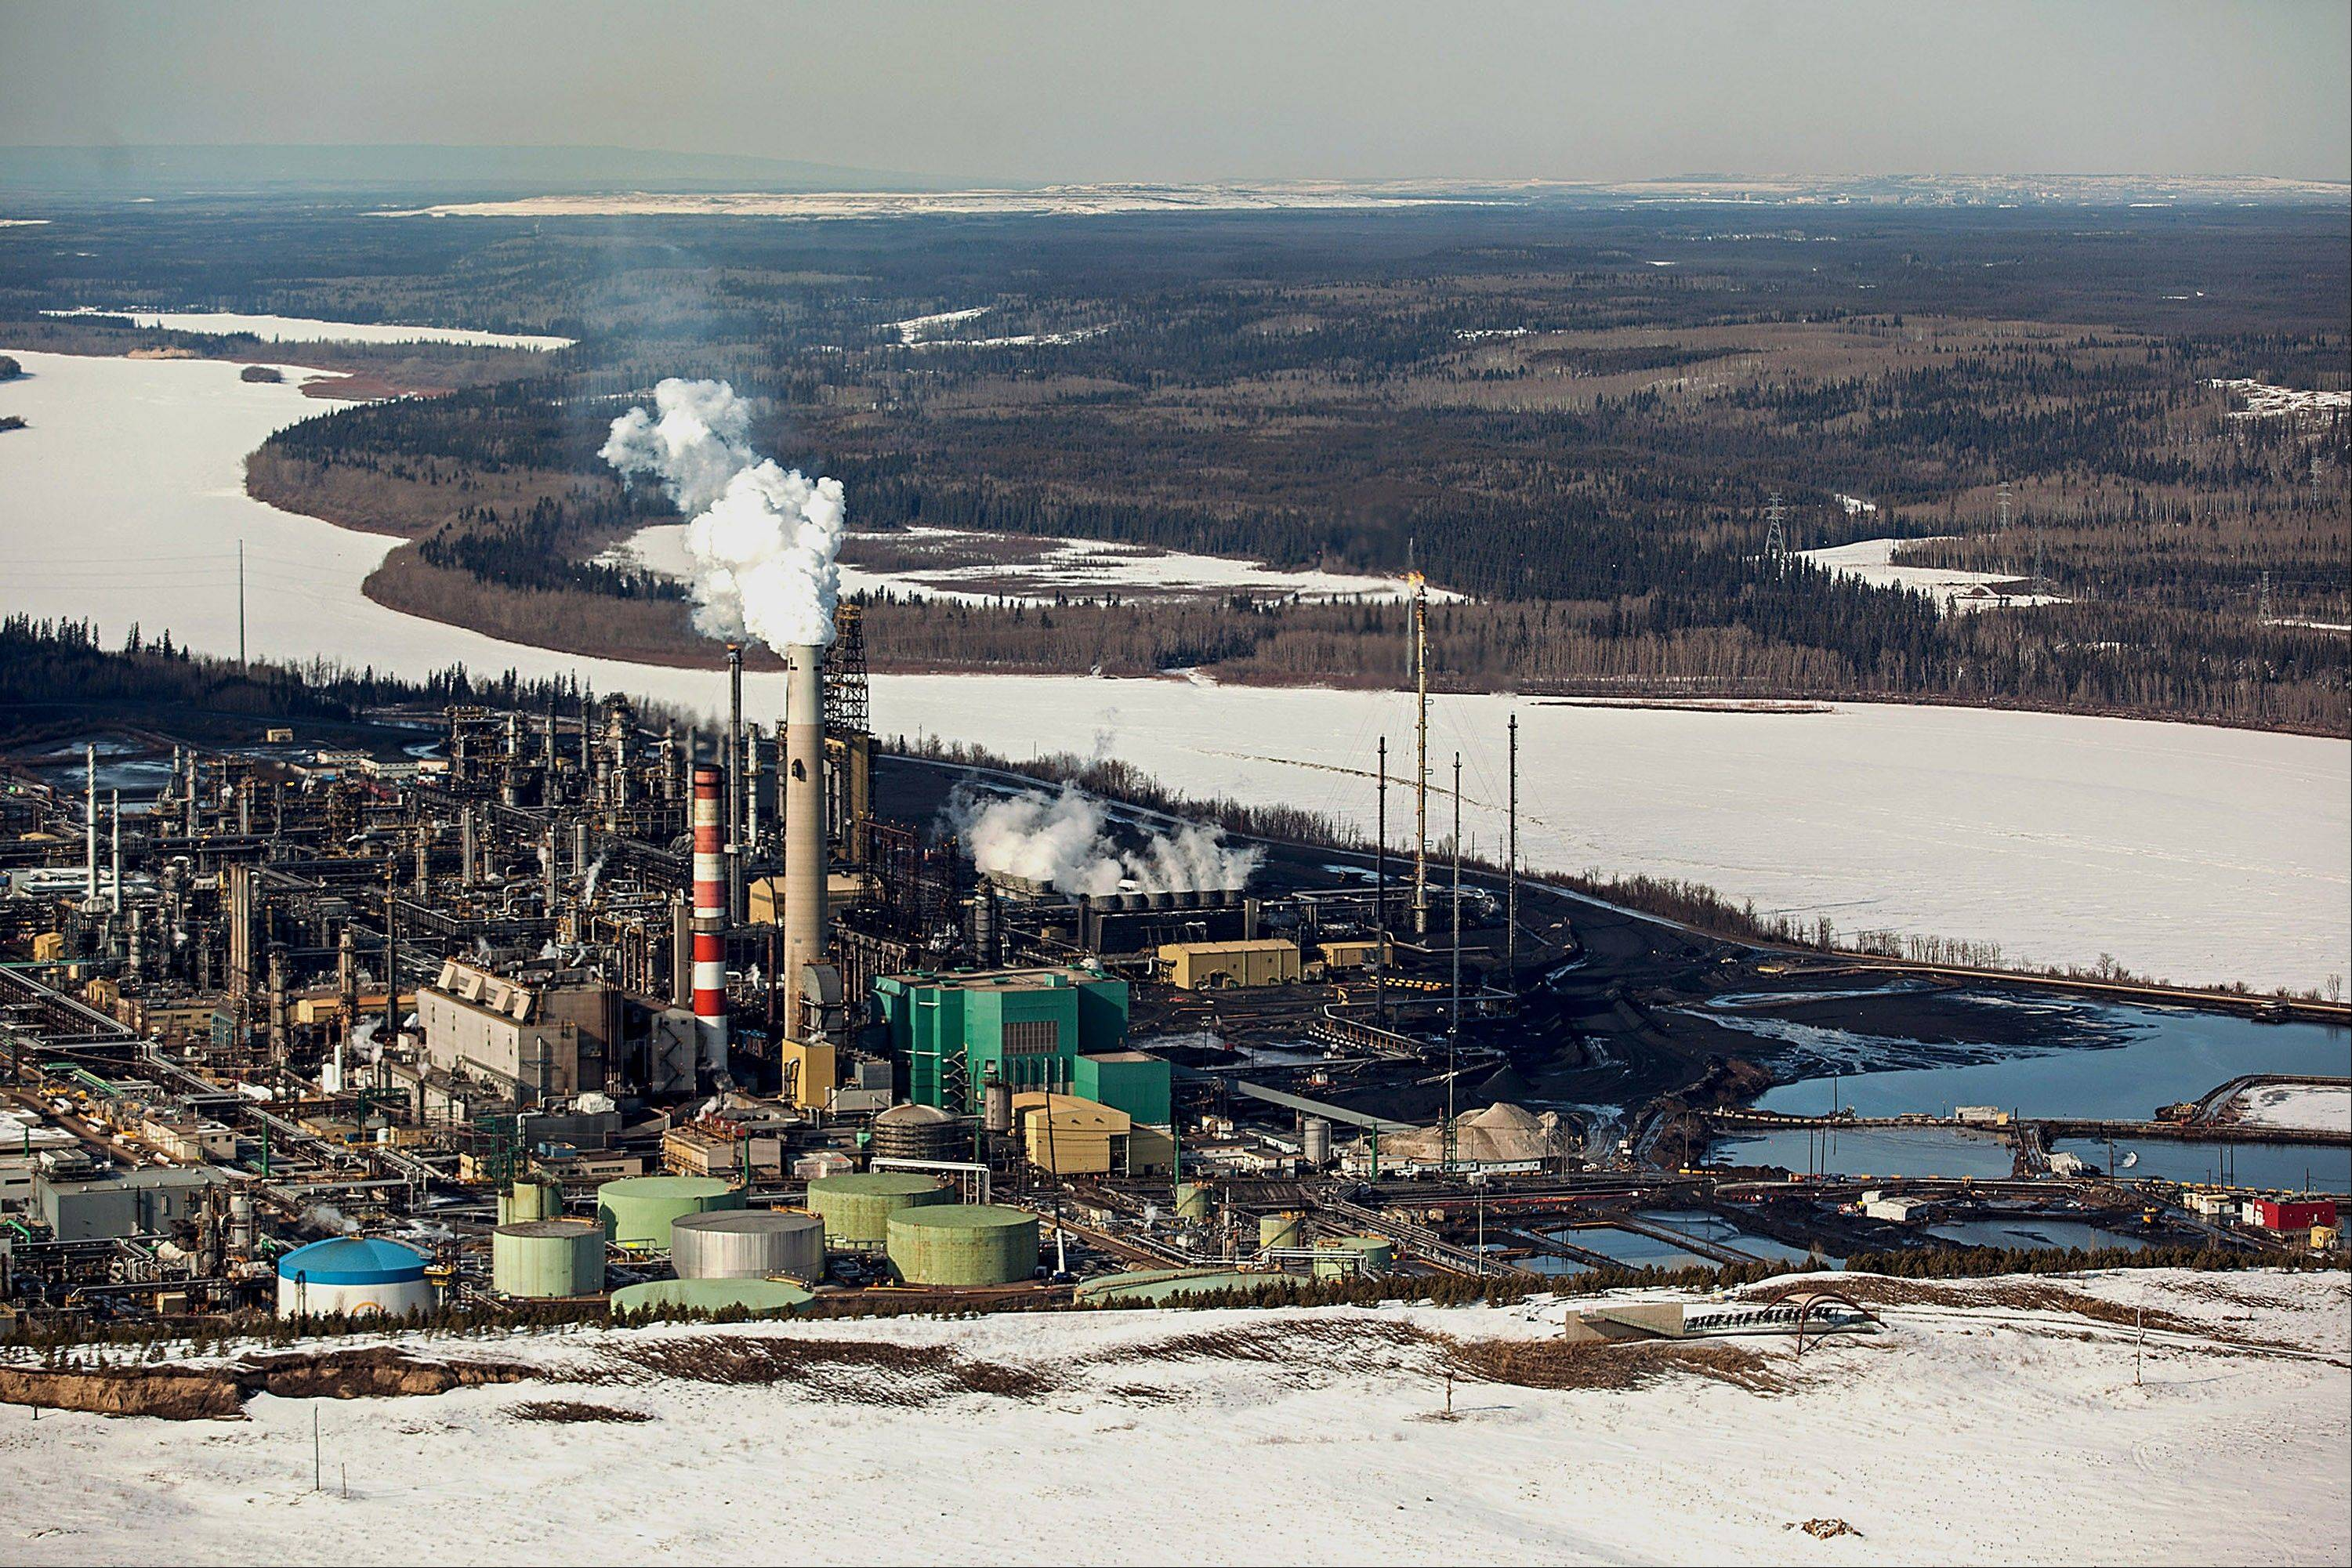 The Suncor Energy Inc. base plant is seen in this aerial photograph of the Athabasca Oil Sands near Fort McMurray, Alberta, Canada. Canadian light oil prices retreated from a six-month high on the spot market reached last week as production slipped and refineries prepared for maintenance.